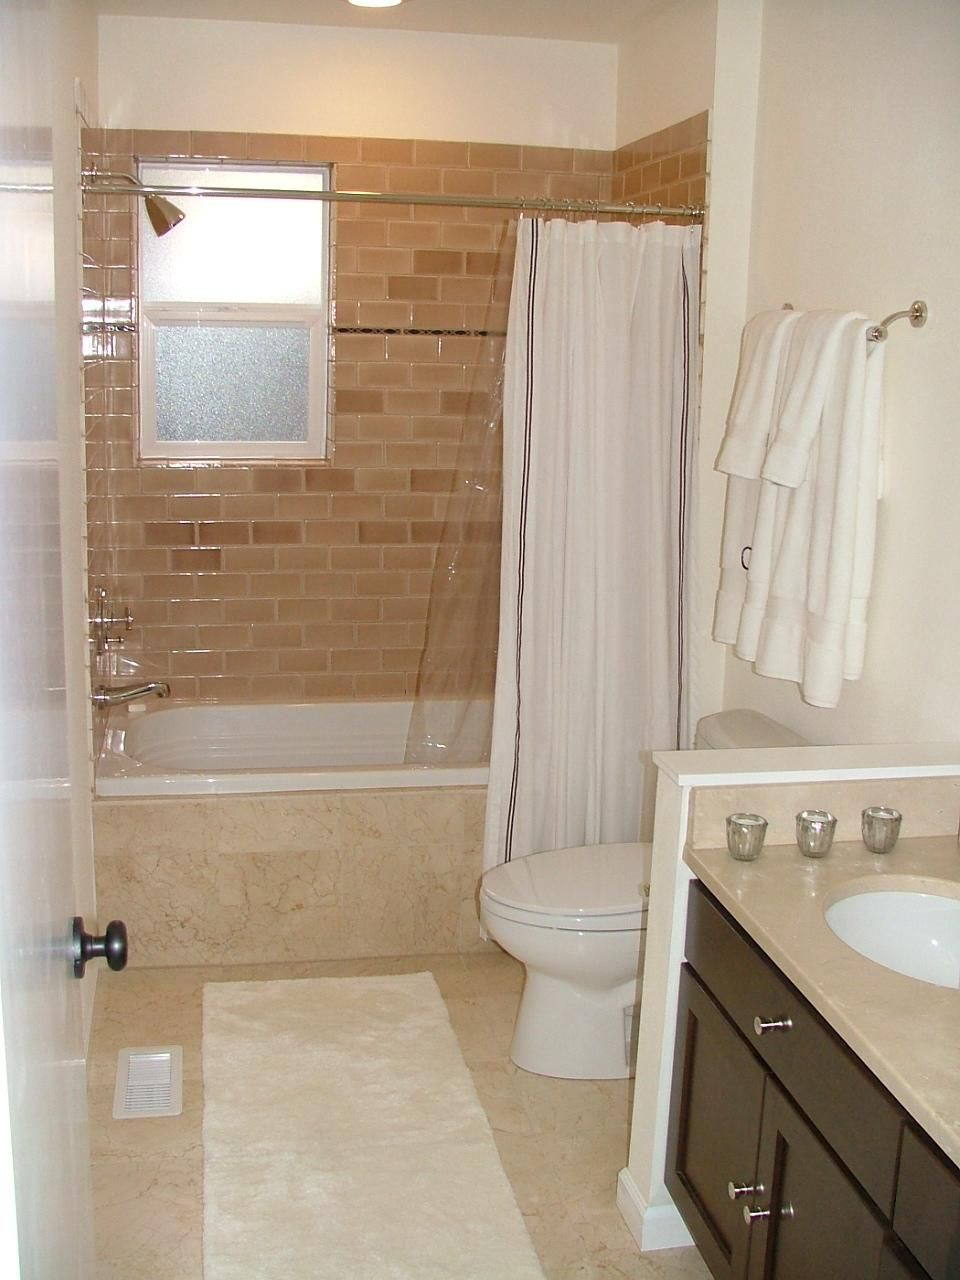 Small Bathrooms Are Less Expensive To Remodel Compared With A - Designer bath rugs for bathroom decorating ideas